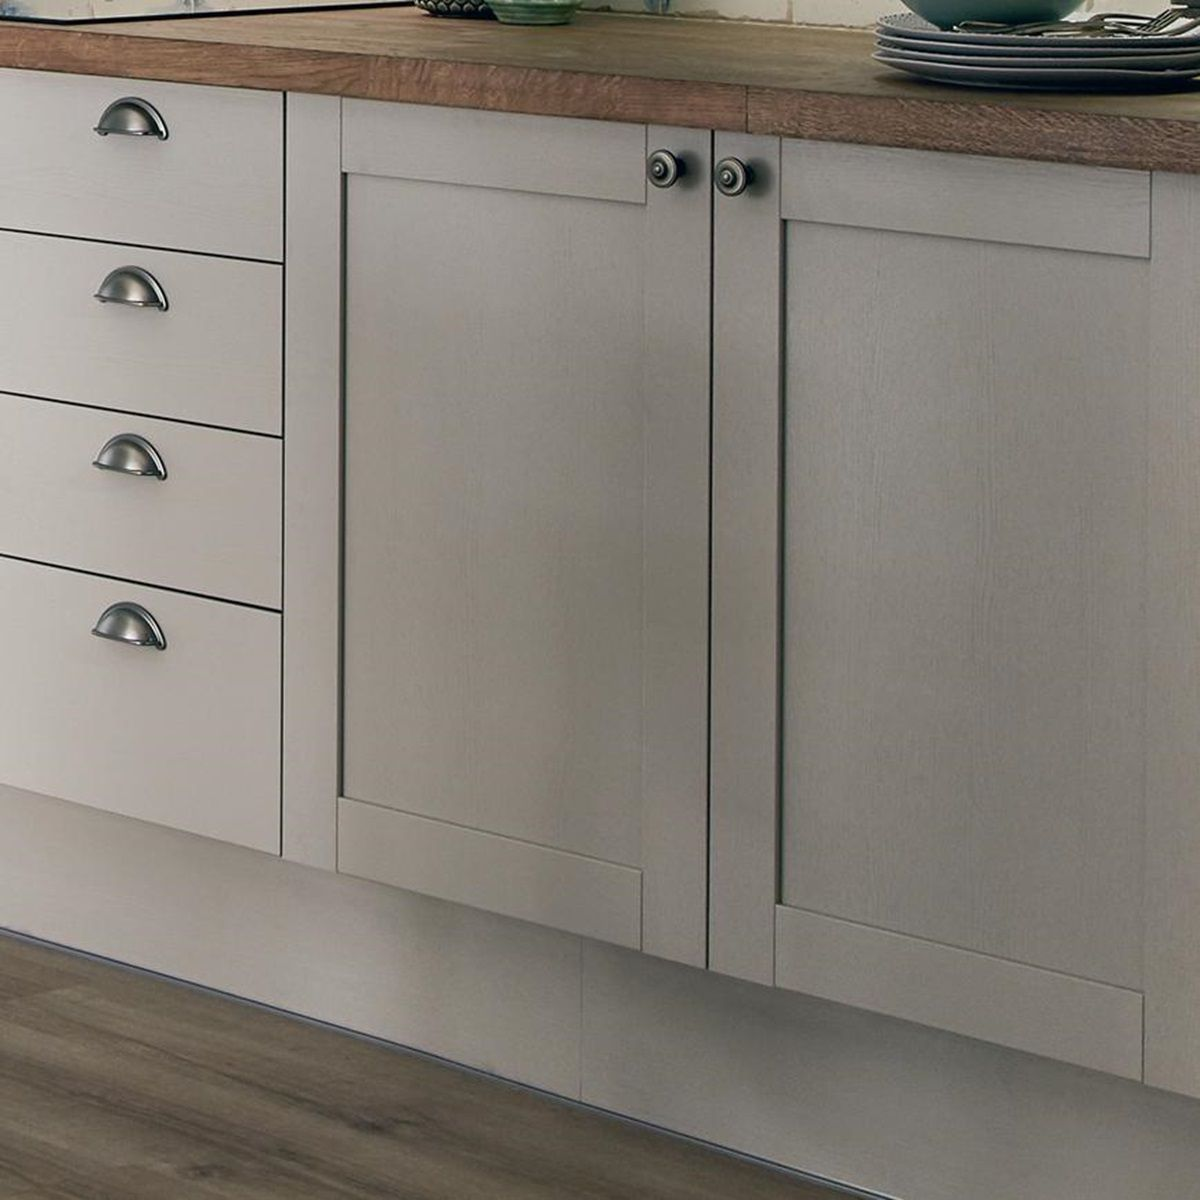 Allendale Cashmere Kitchen Fitted Kitchens Howdens in